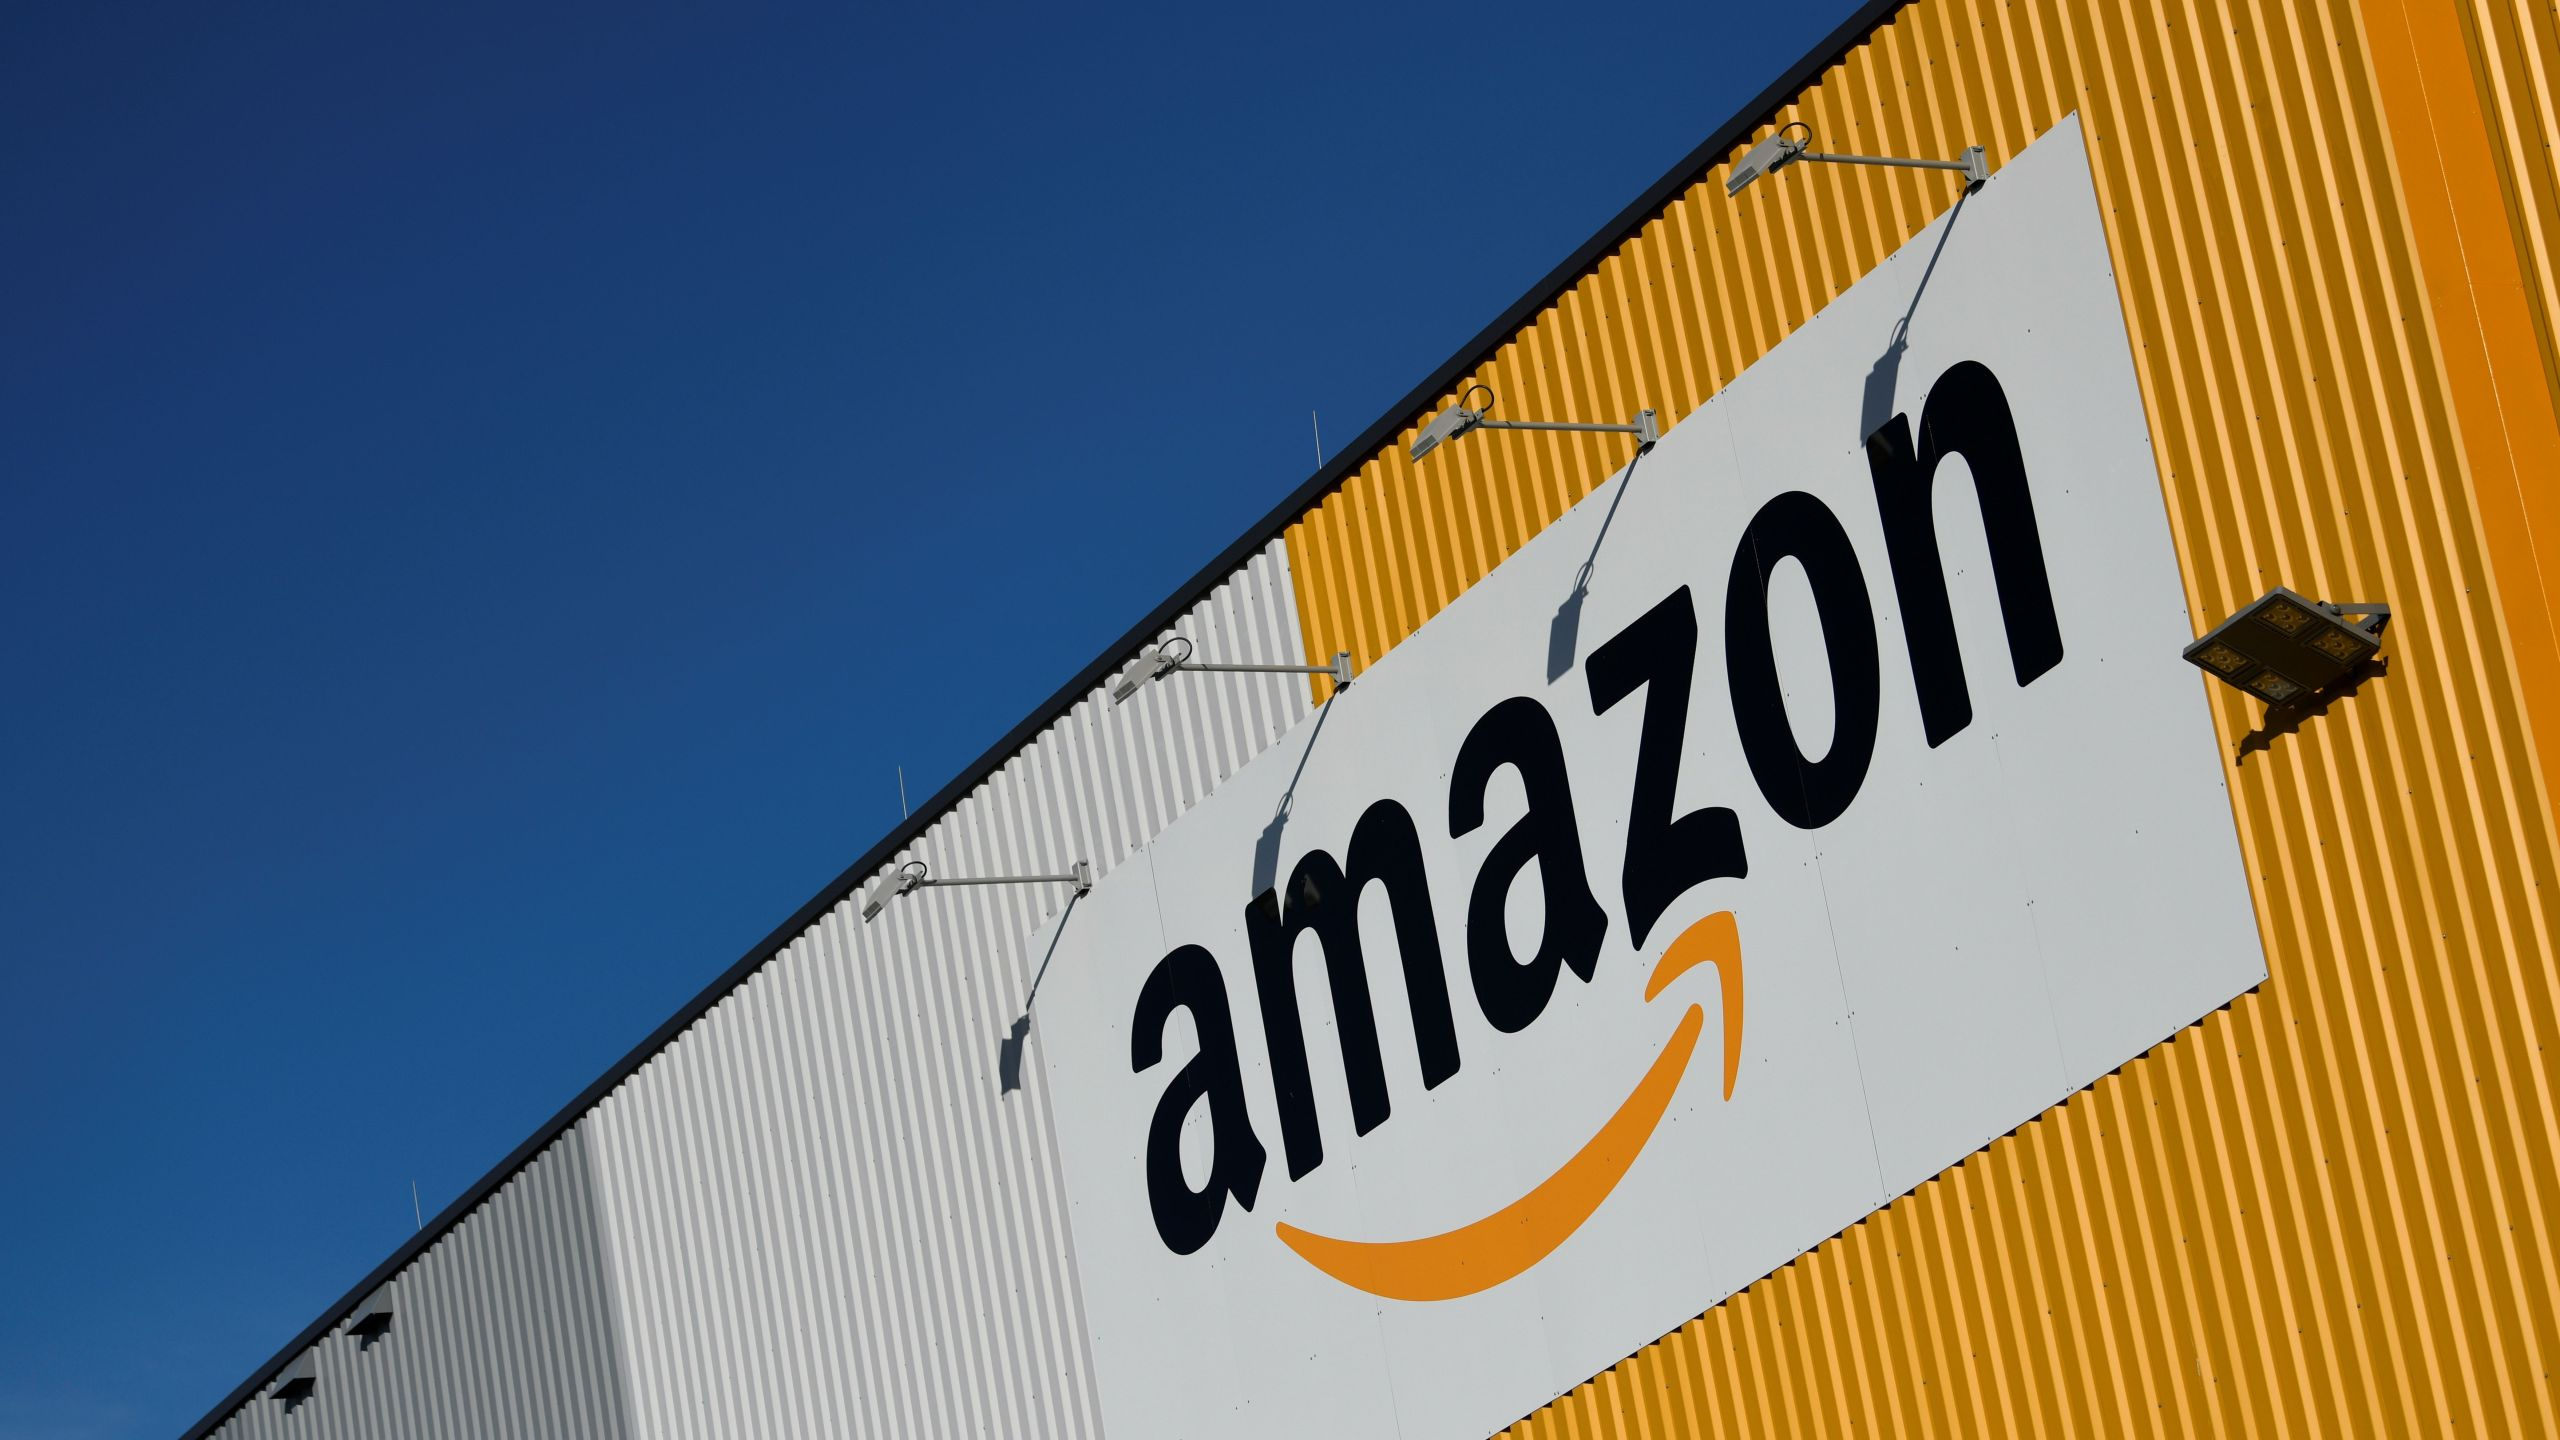 A picture taken on Nov. 8, 2018 shows the Amazon logo displayed outside the group's distribution center in Dortmund, Germany. (Credit: INA FASSBENDER/AFP/Getty Images)